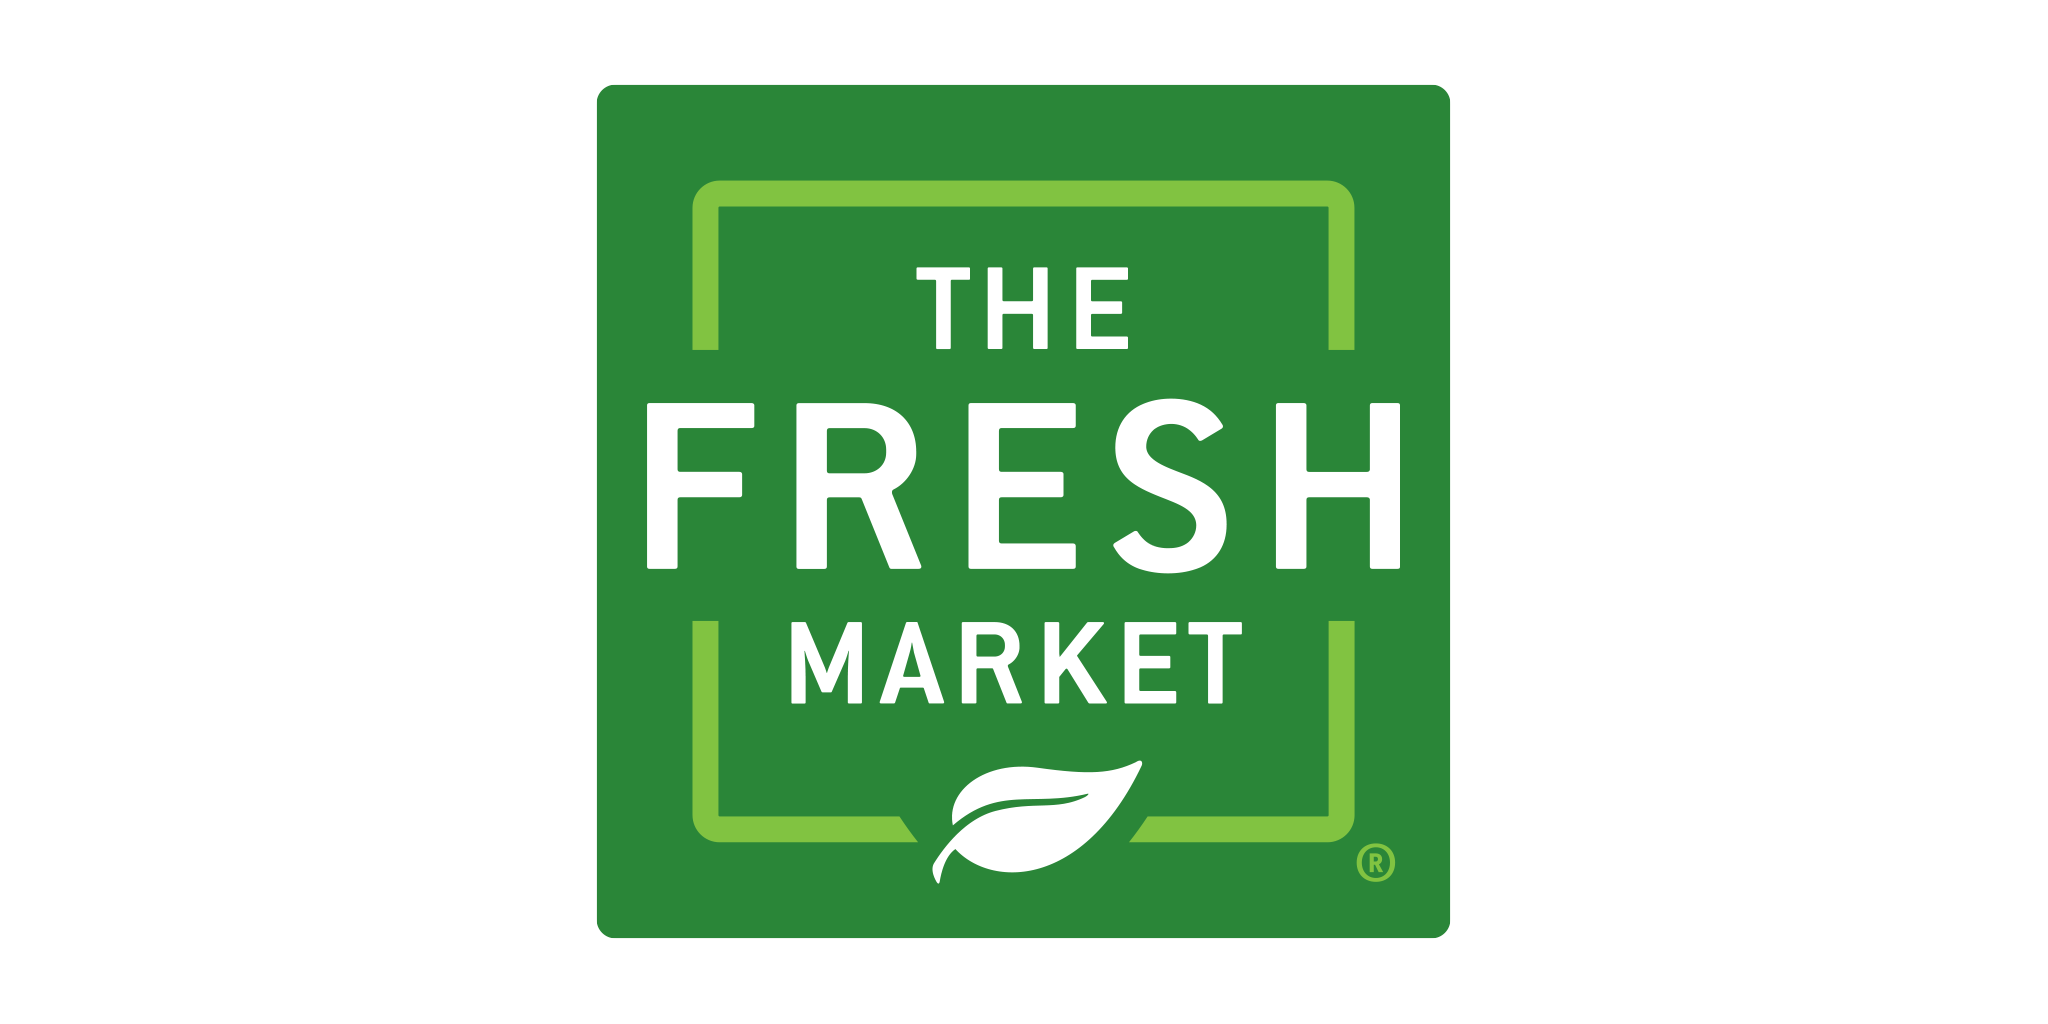 Where to Buy/Ralston-Family-Farms-Grocers-the-fresh-market-logo.png